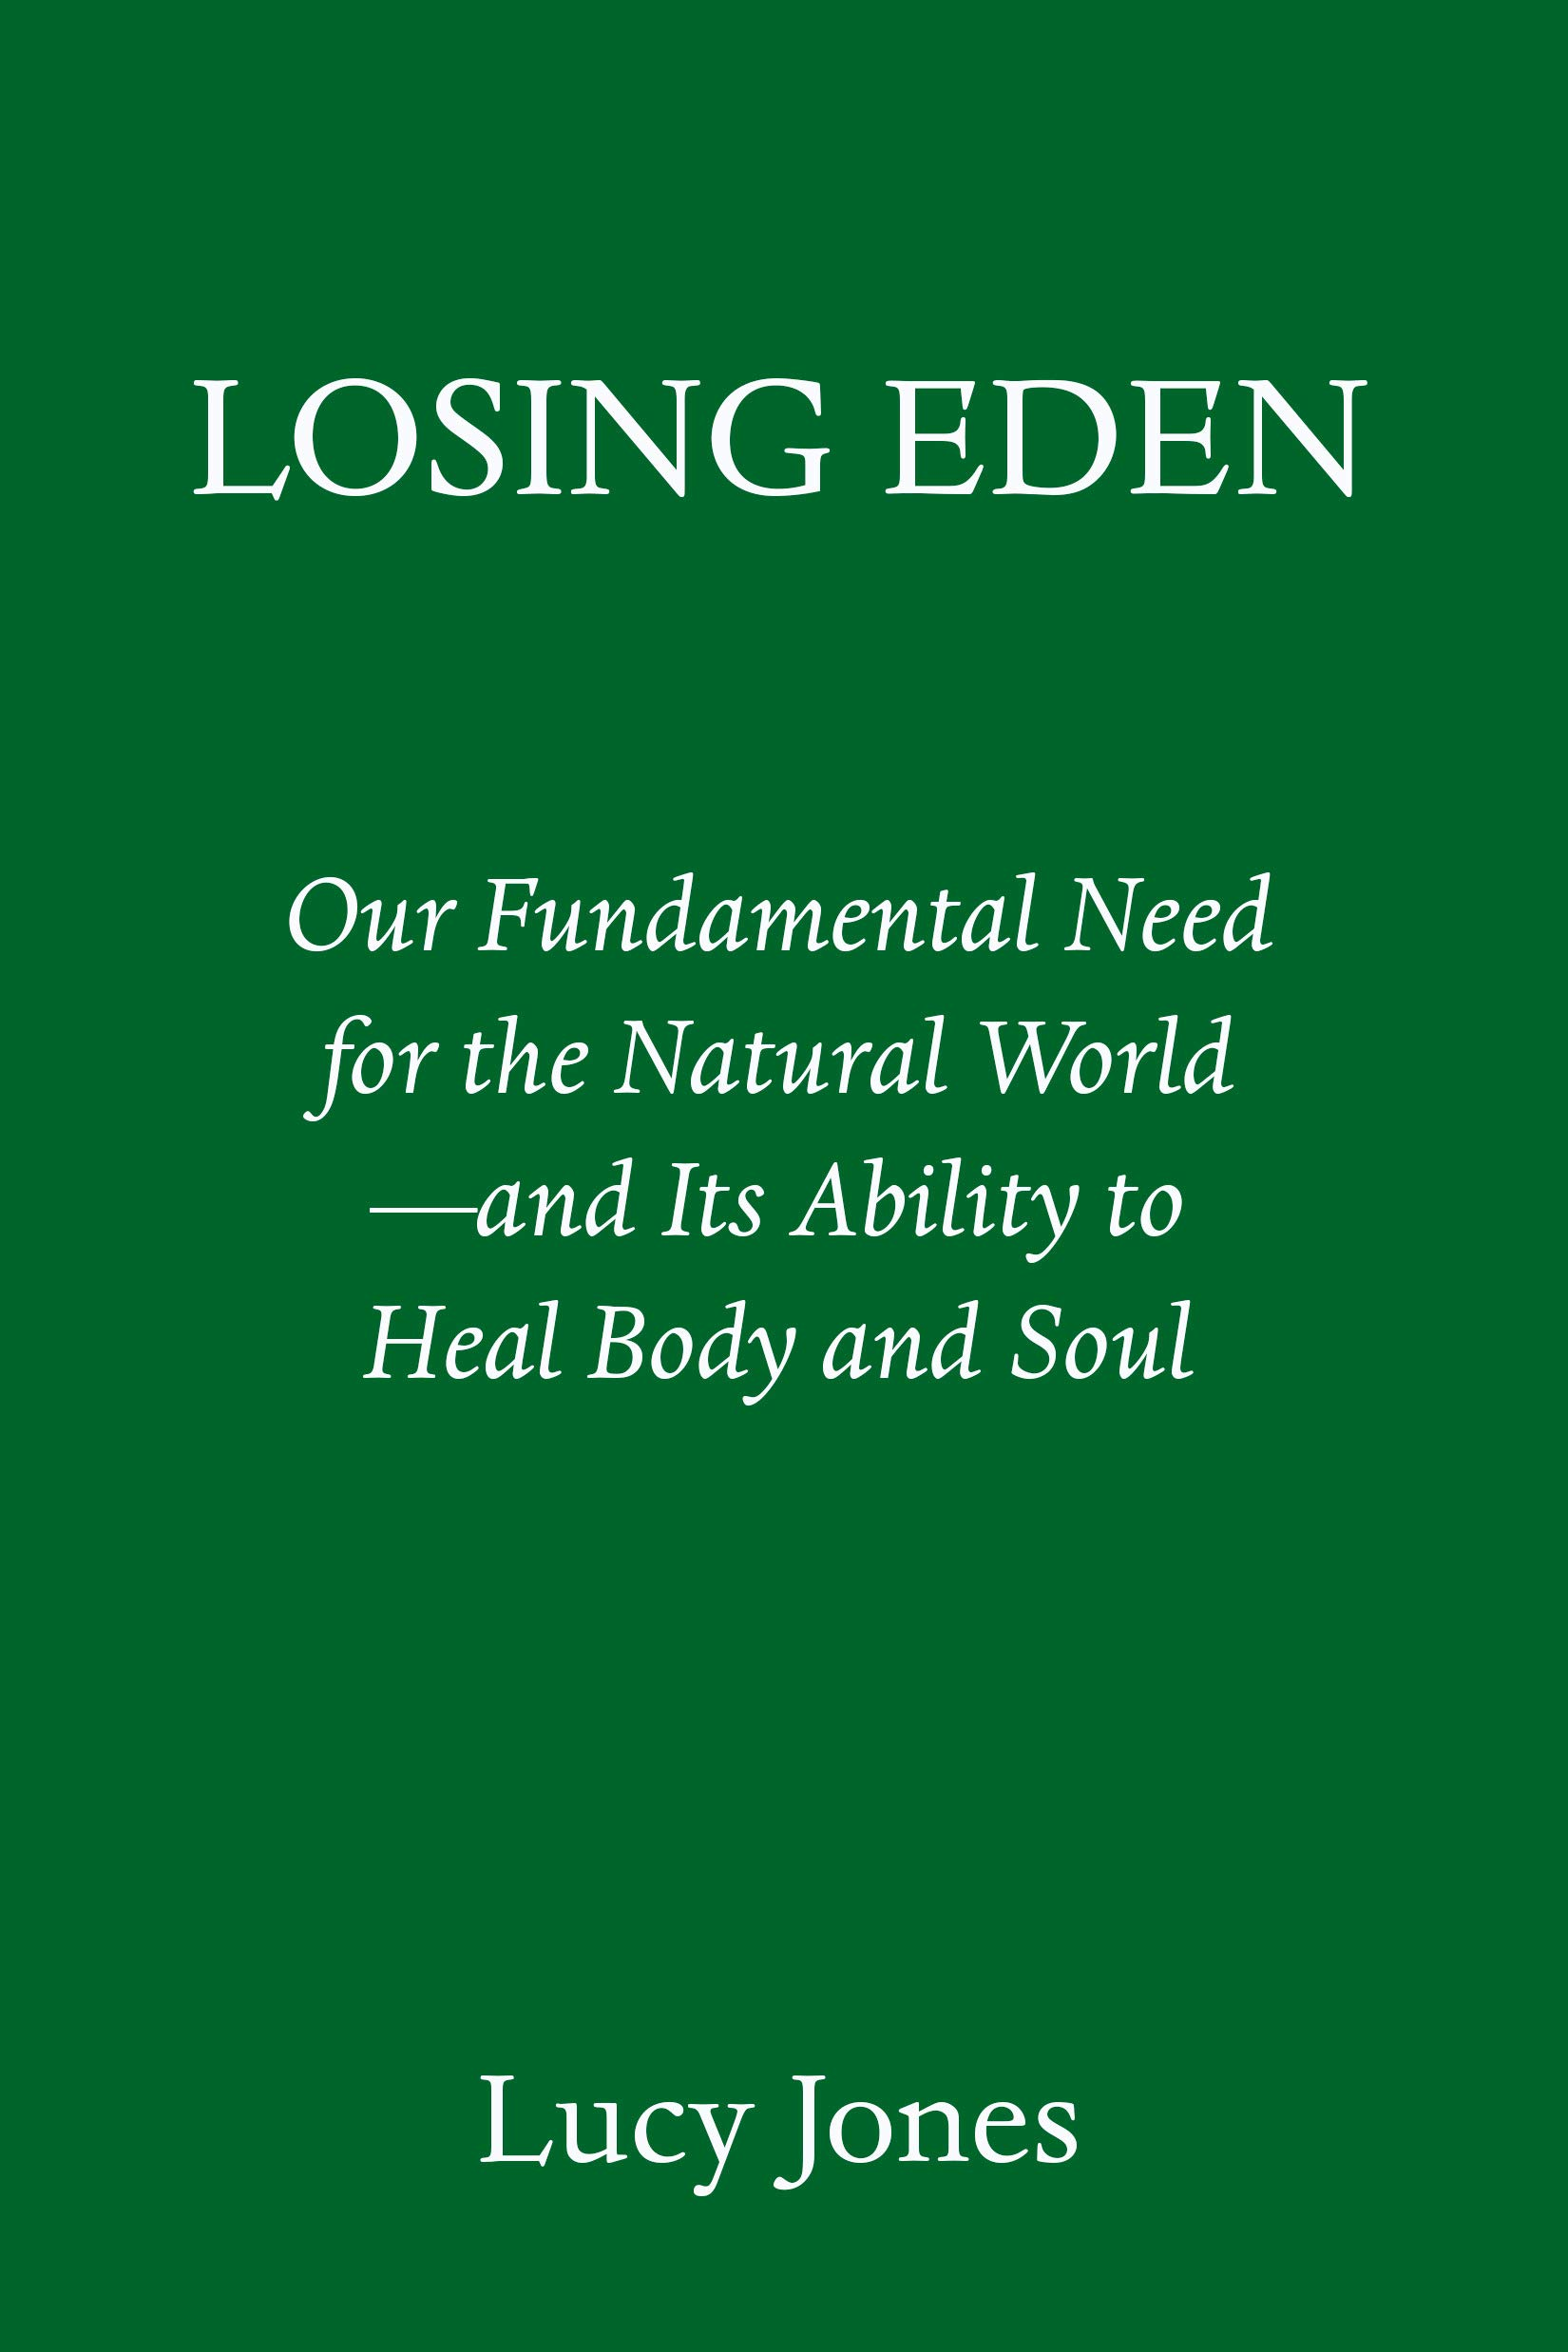 Losing Eden: Our Fundamental Need for the Natural World --and Its Ability to Heal Body and Soul